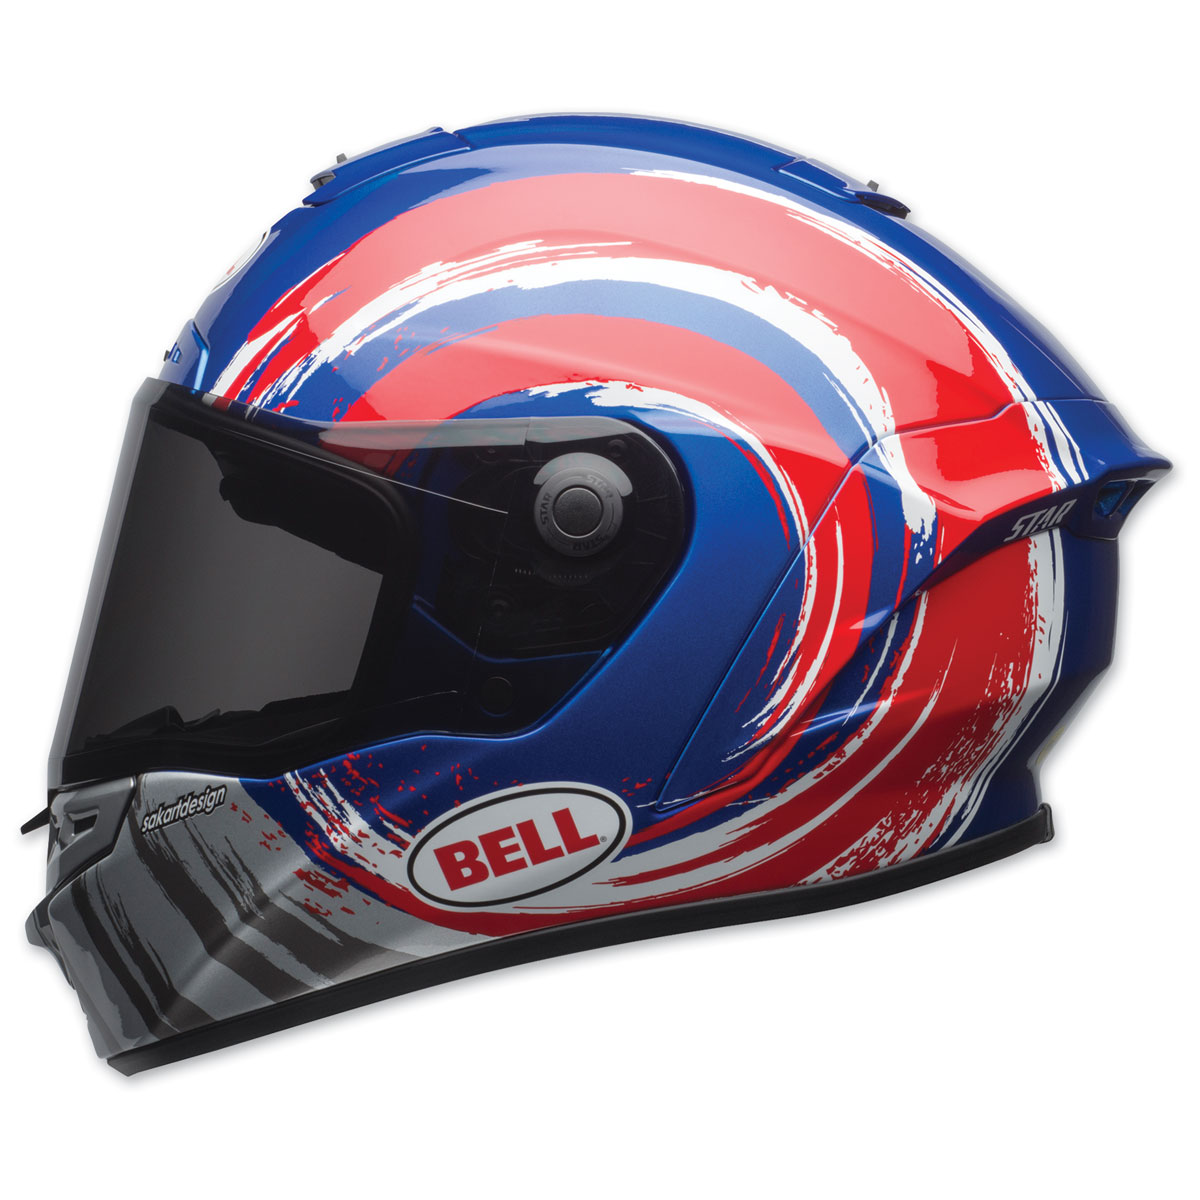 Bell Star with MIPS LE Brad Binder Replica Full Face Helmet